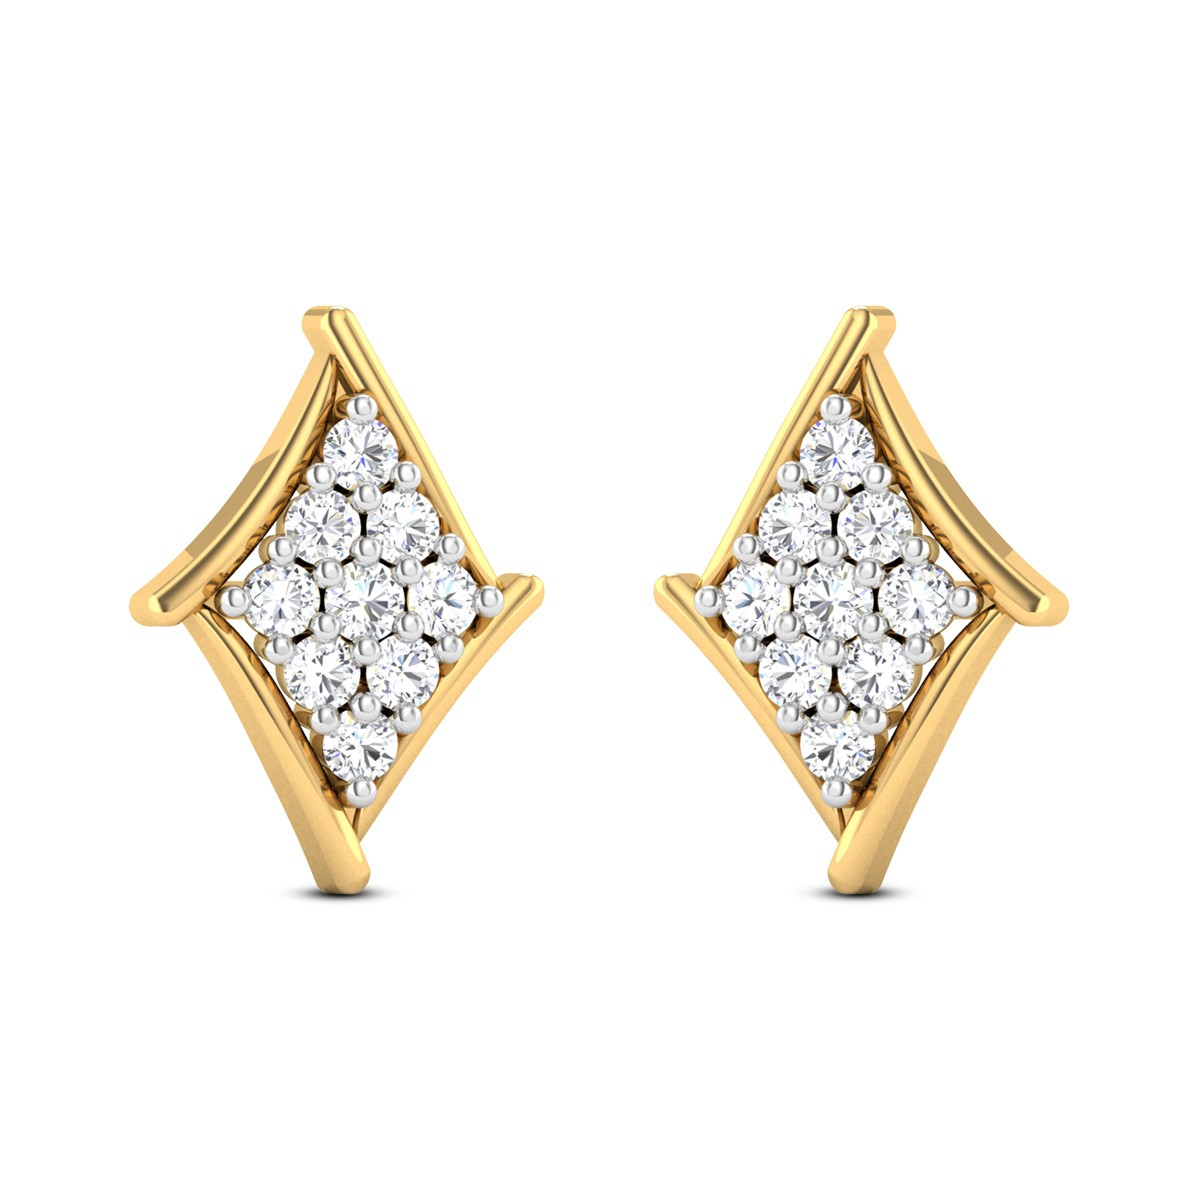 Hortense Diamond Earrings